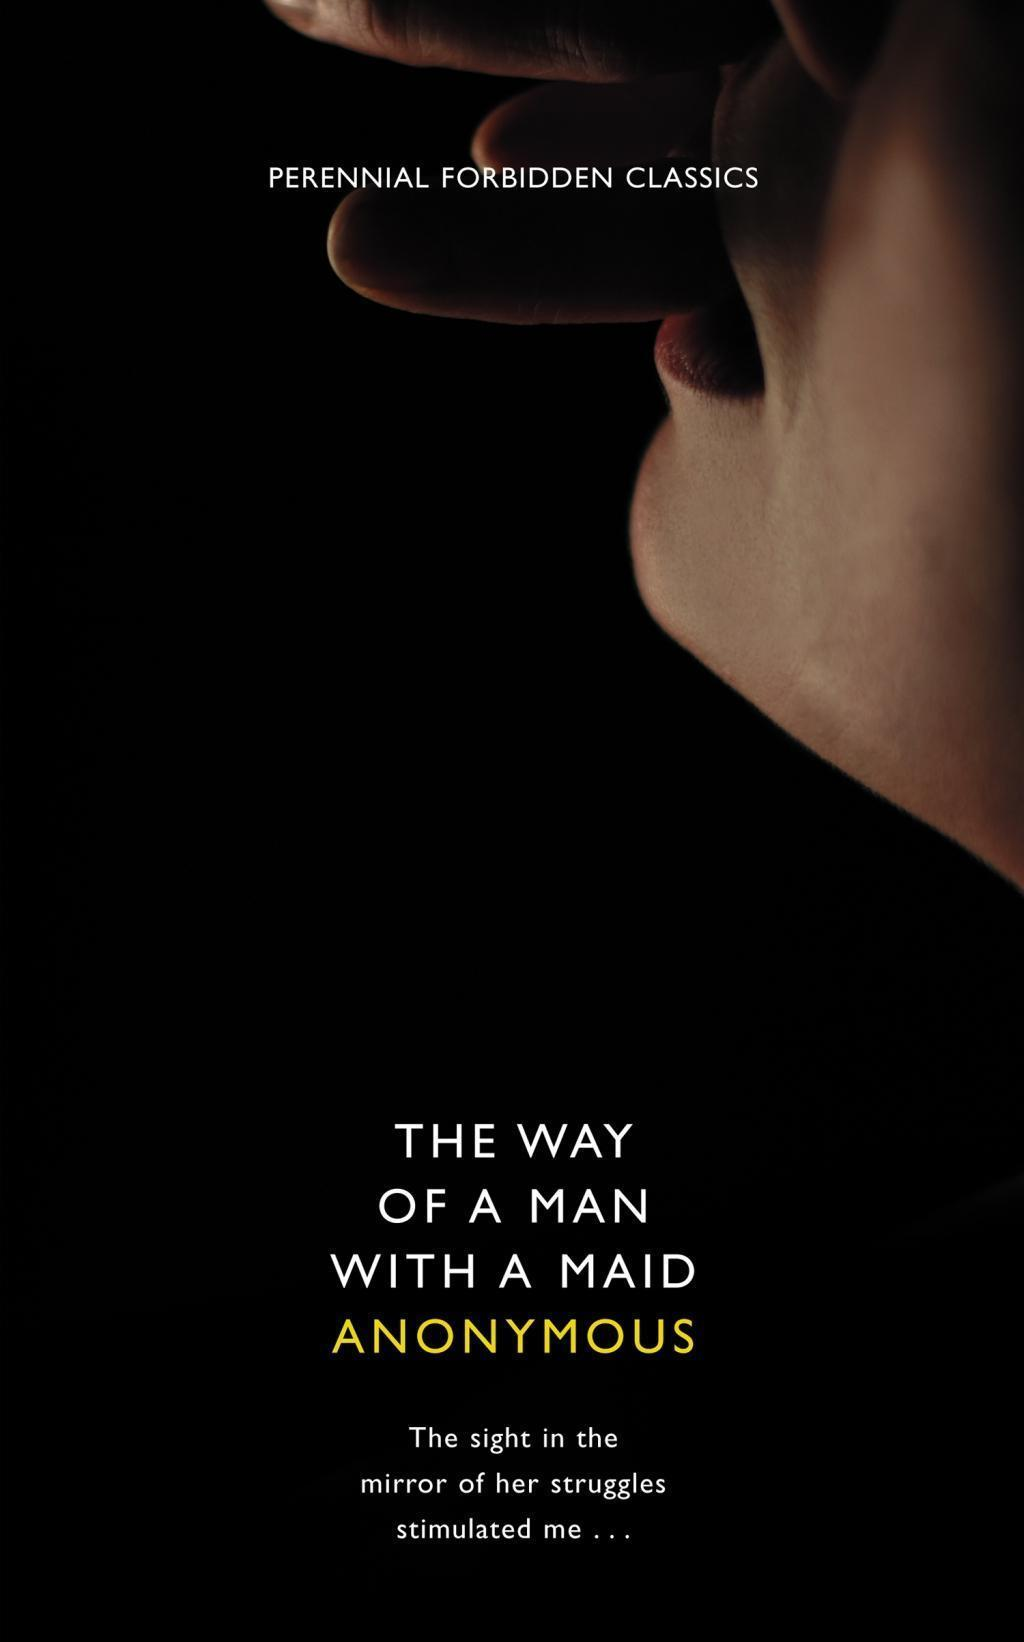 The Way of a Man with a Maid (Harper Perennial Forbidden Classics)